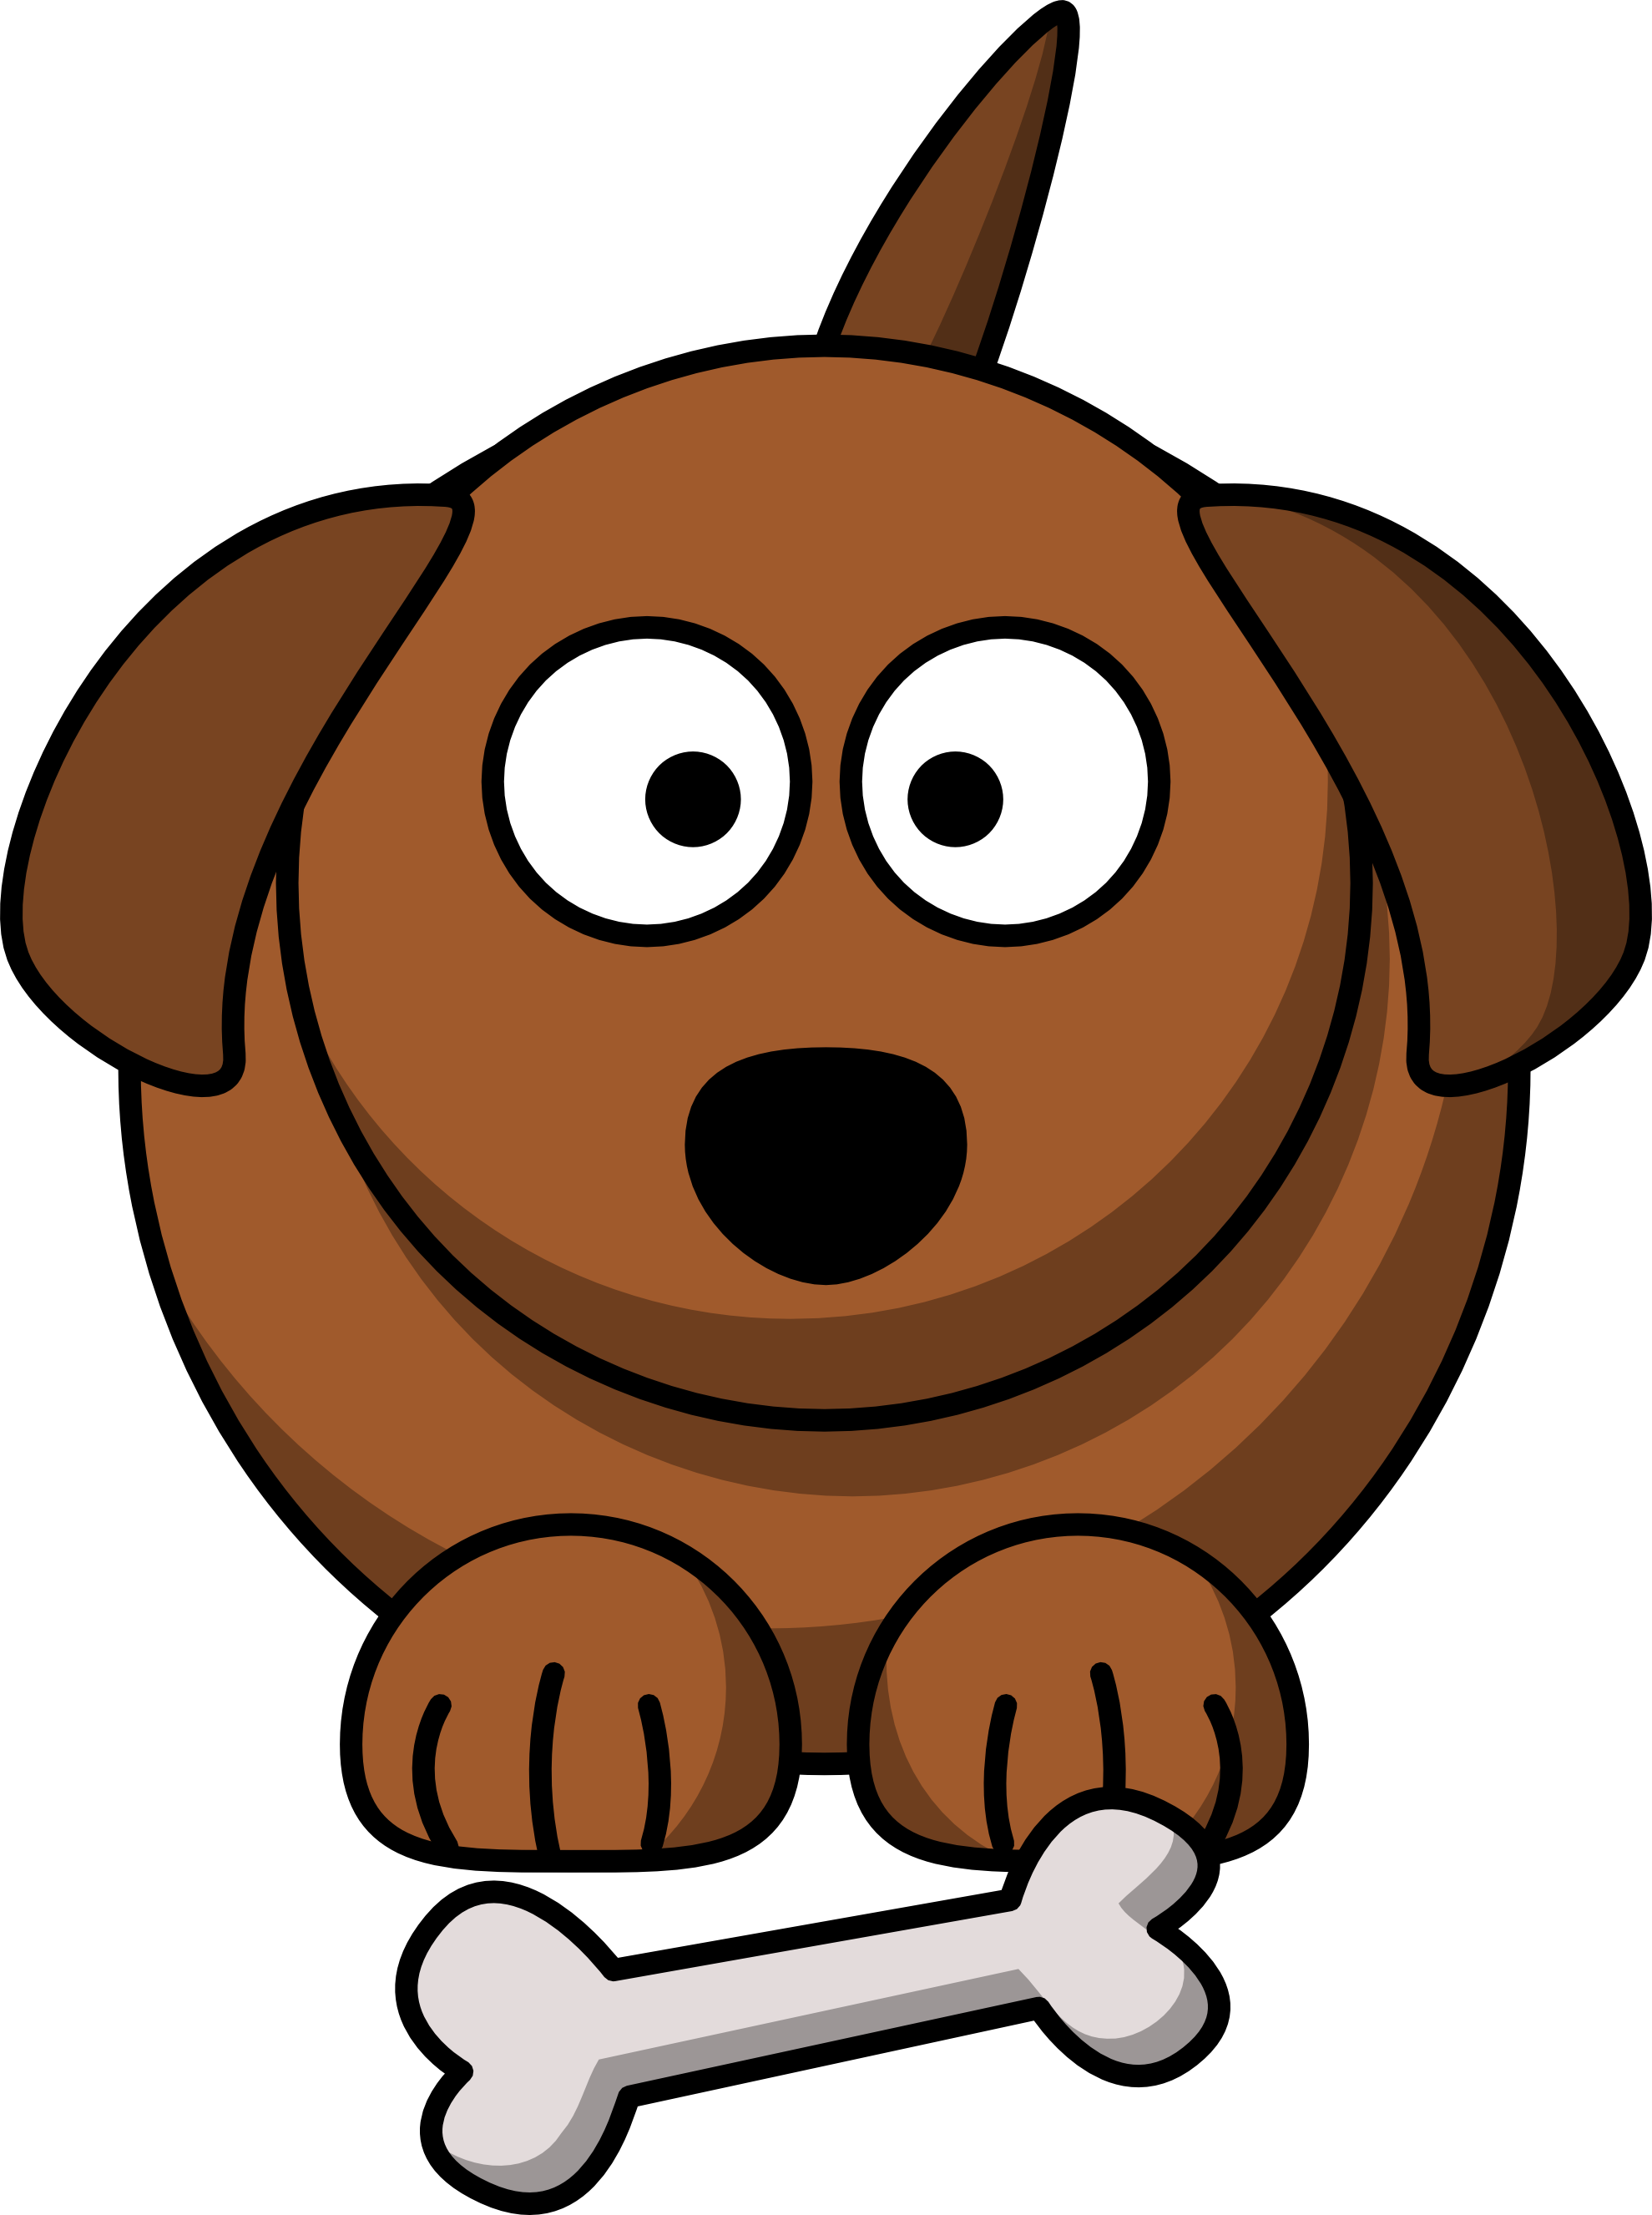 Dog clipart png transparent banner freeuse library Dog clipart png transparent - ClipartFest banner freeuse library